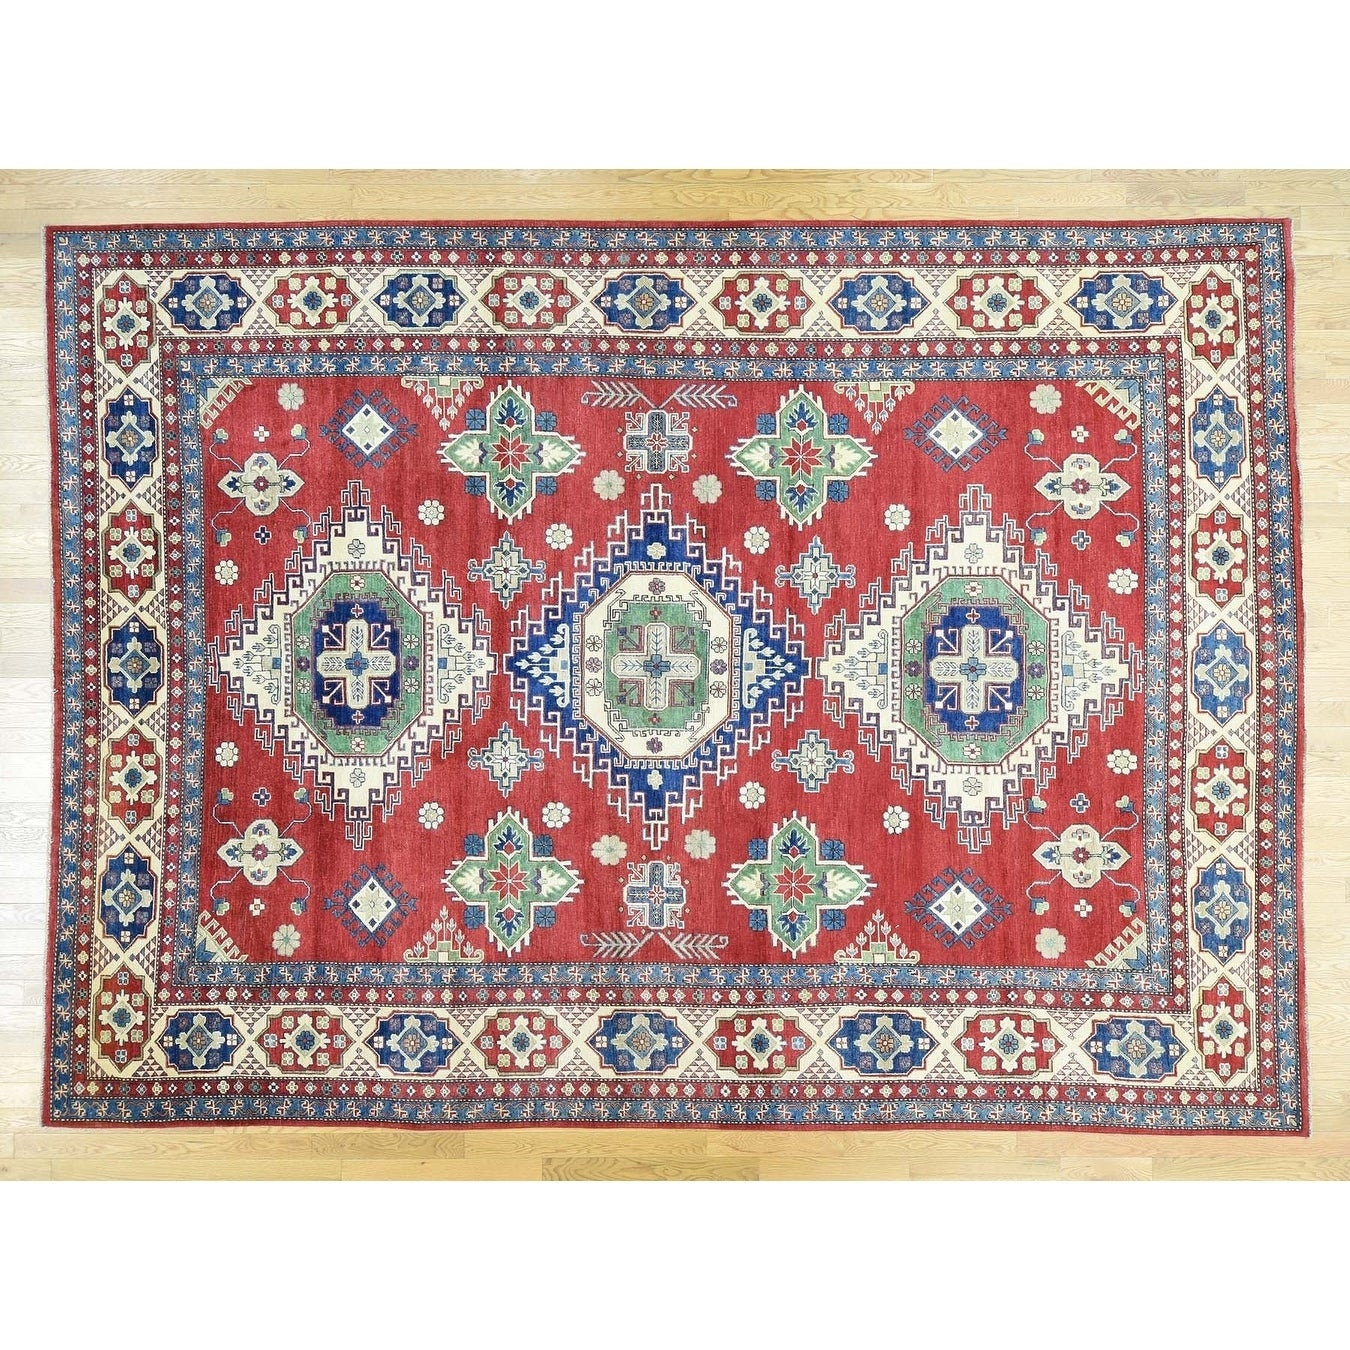 Hand Knotted Red Kazak with Wool Oriental Rug - 10 x 138